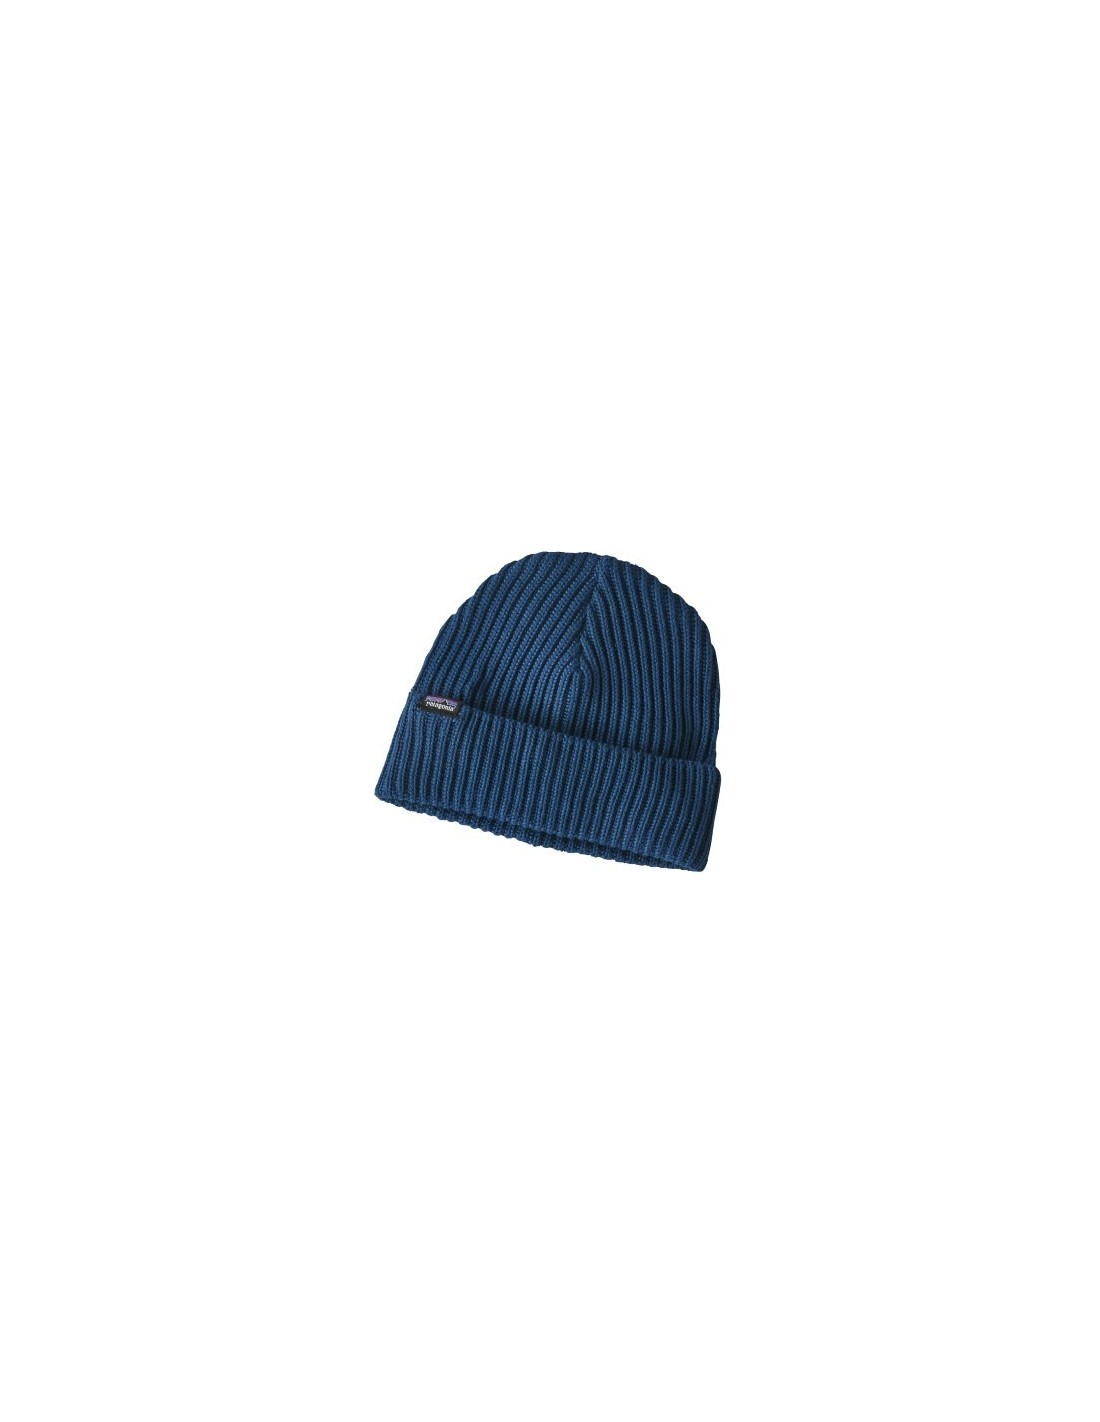 Patagonia Fishermans Rolled Beanie Stone Blue SPECIAL OFFER